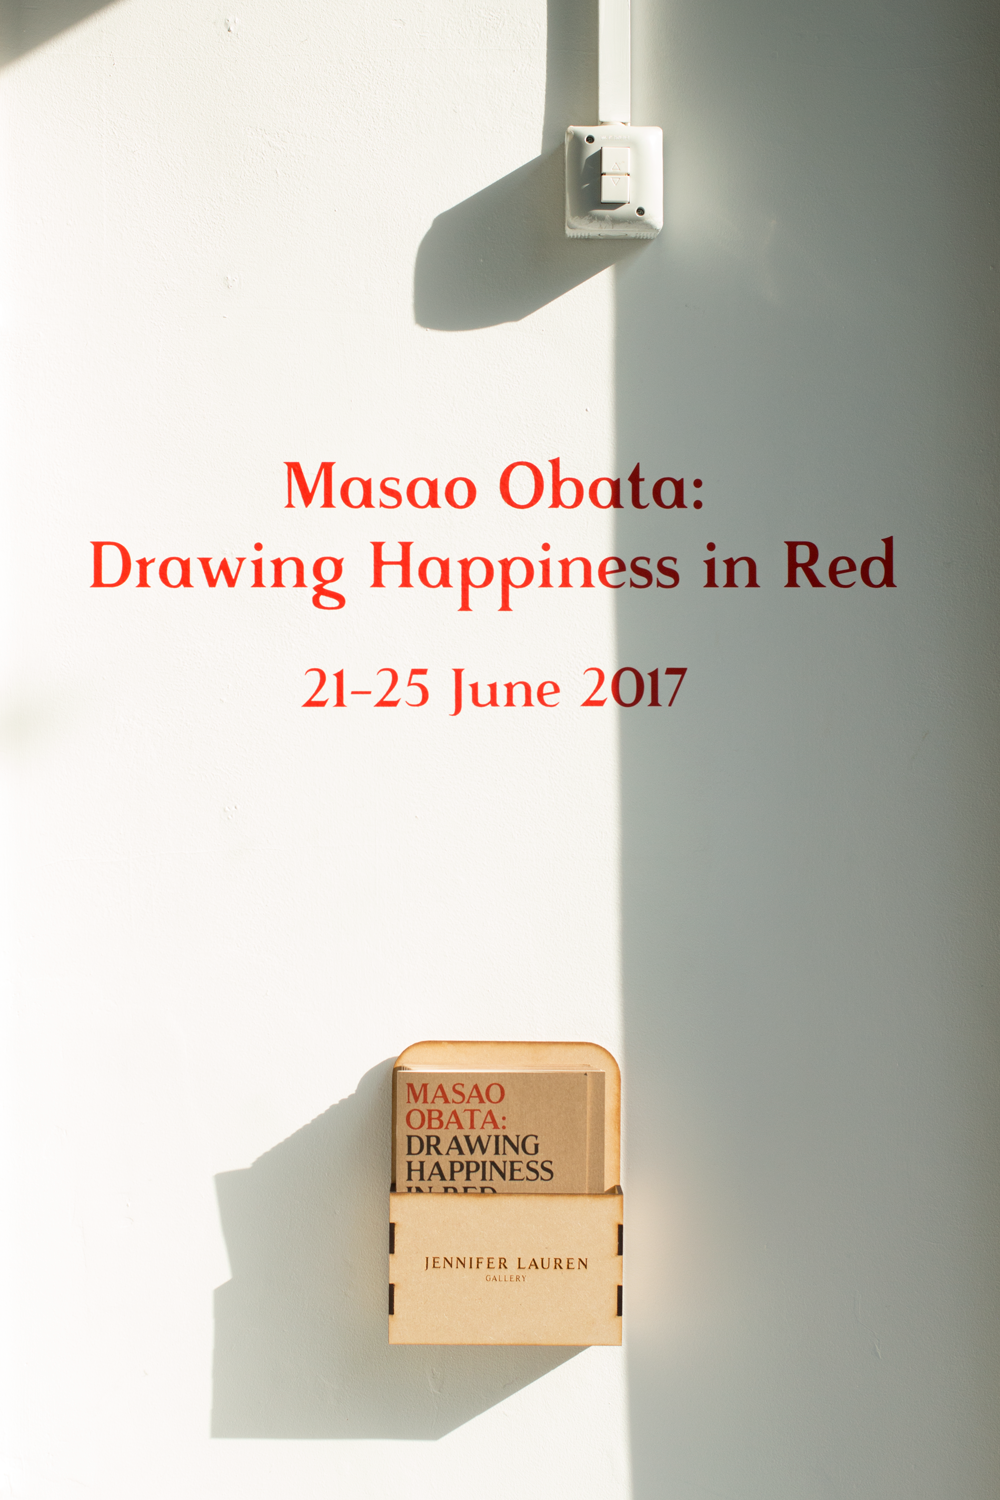 Masao-Obata-Drawing-Happiness-In-Red-Exhibition-at-Jennifer-Lauren-Gallery-in-London.png